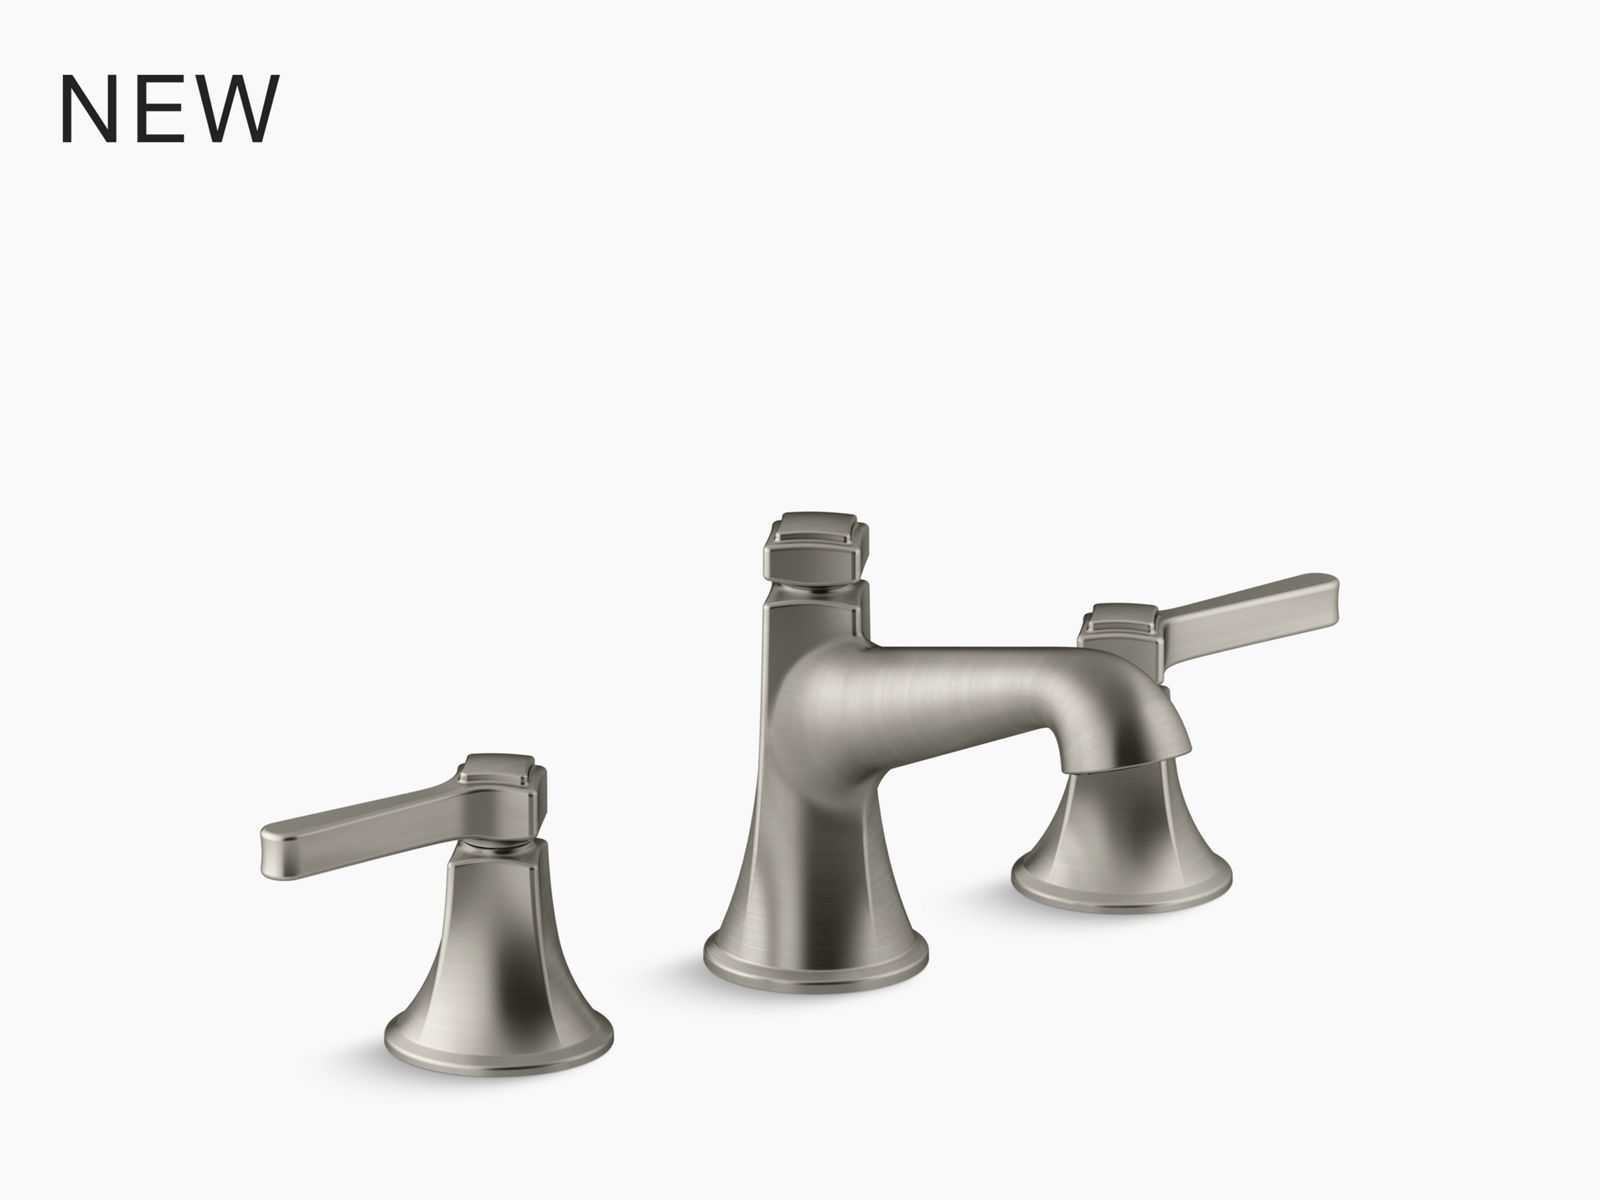 brynn pull down kitchen faucet with soap lotion dispenser